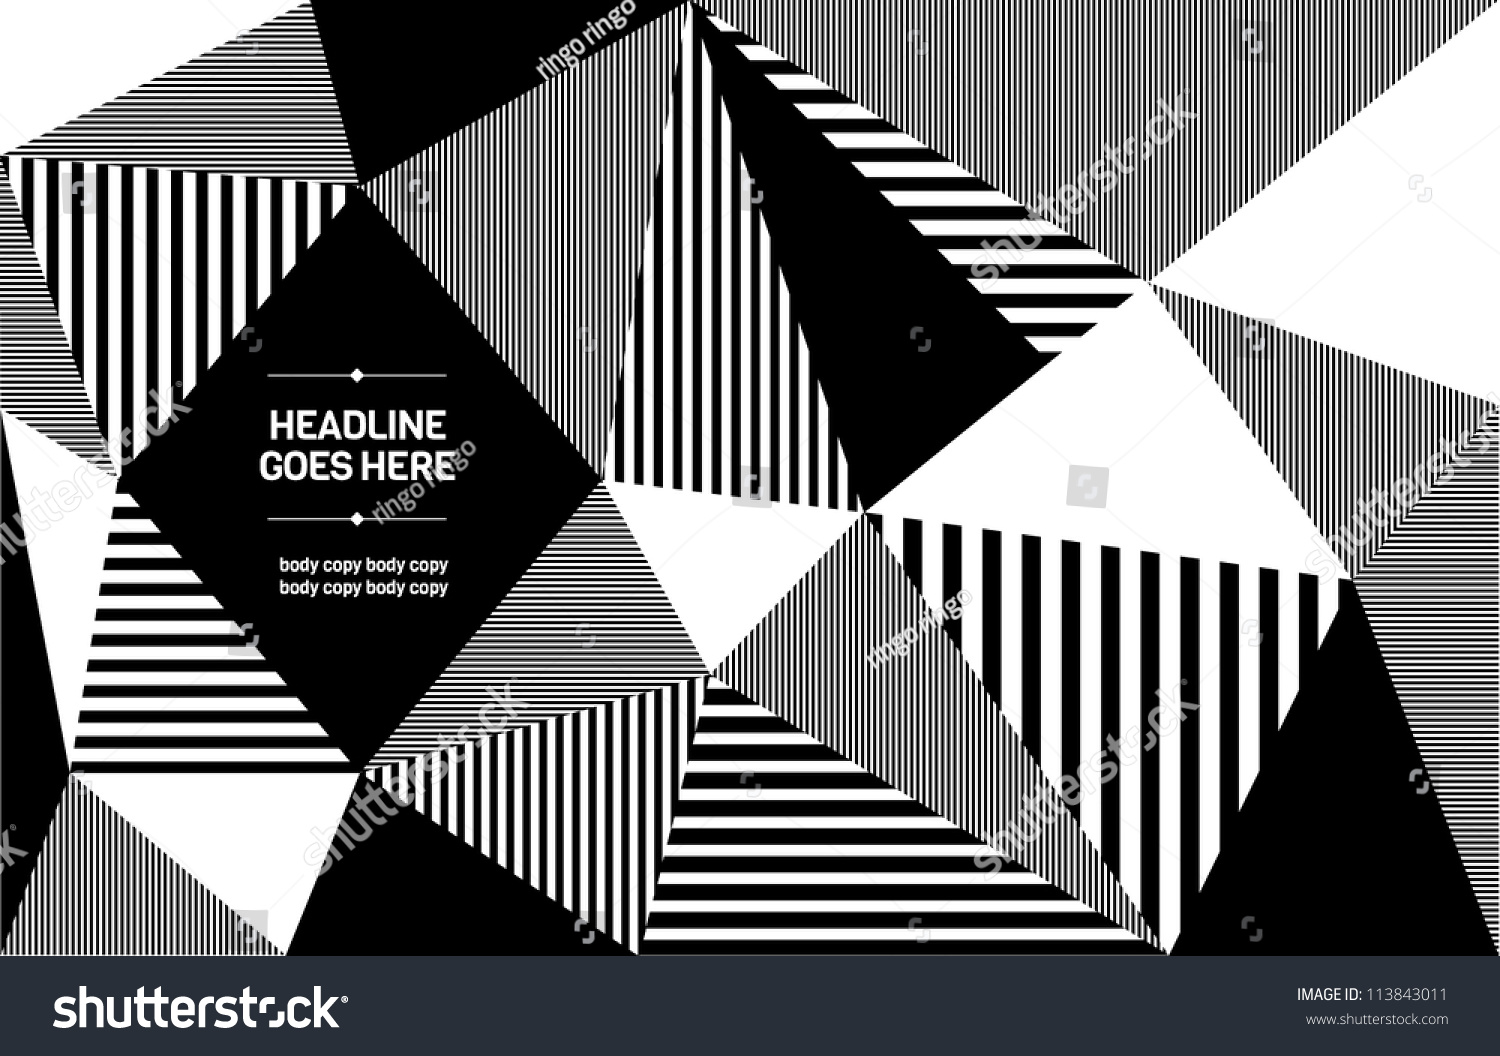 Poster design wallpaper - Print Vector Poster Design Template Layout Design Background Abstract Web Design